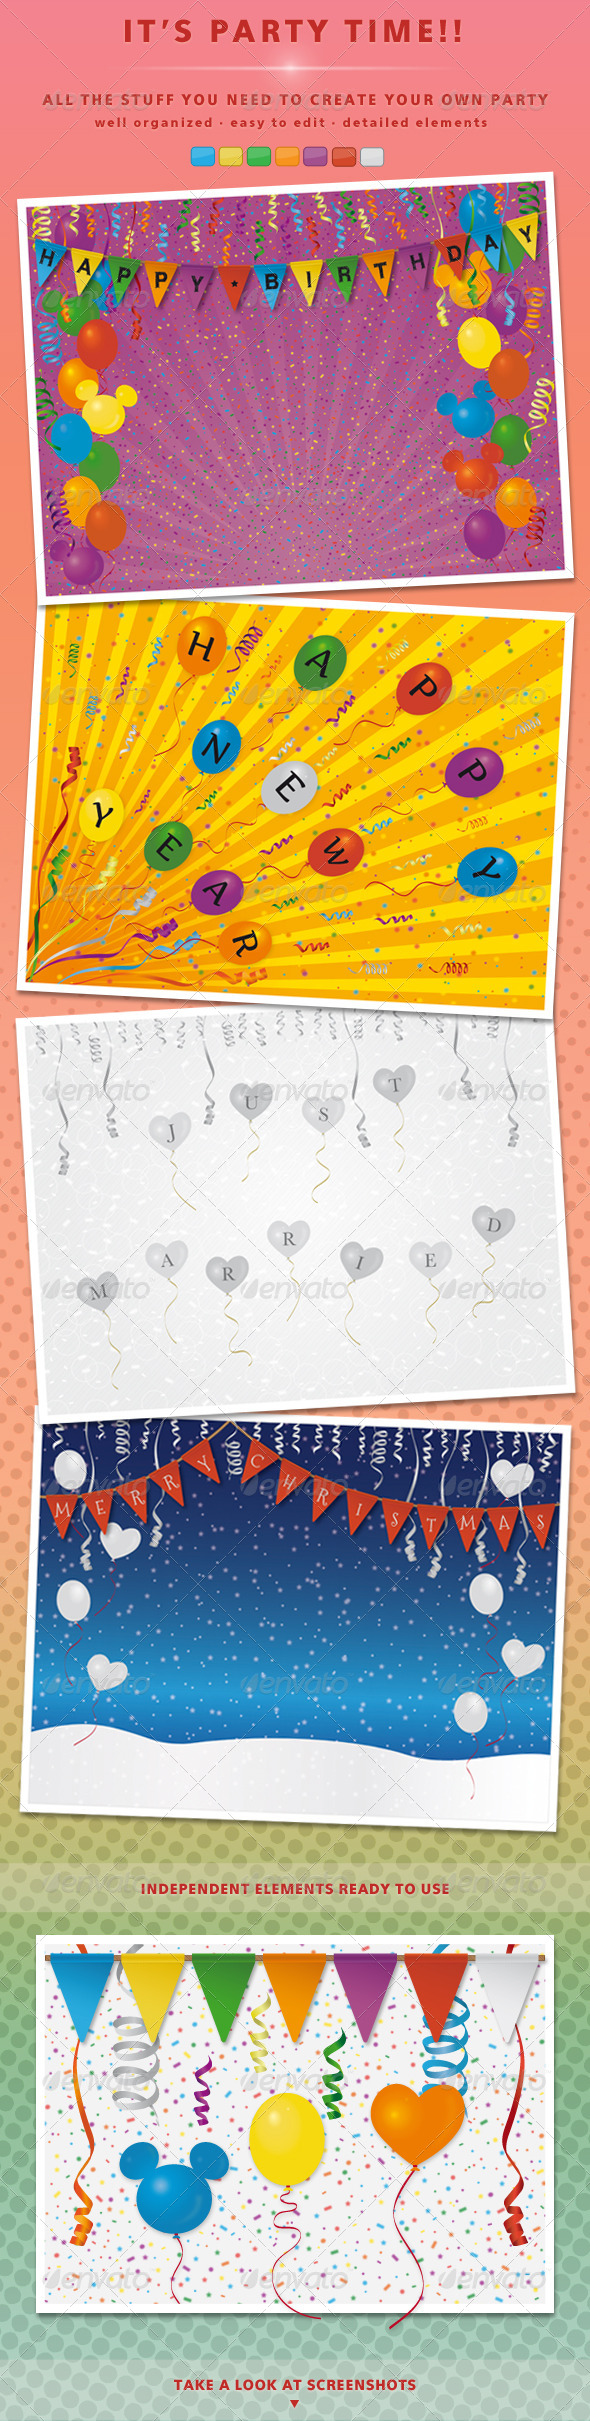 GraphicRiver Kit Party Elements 4883735